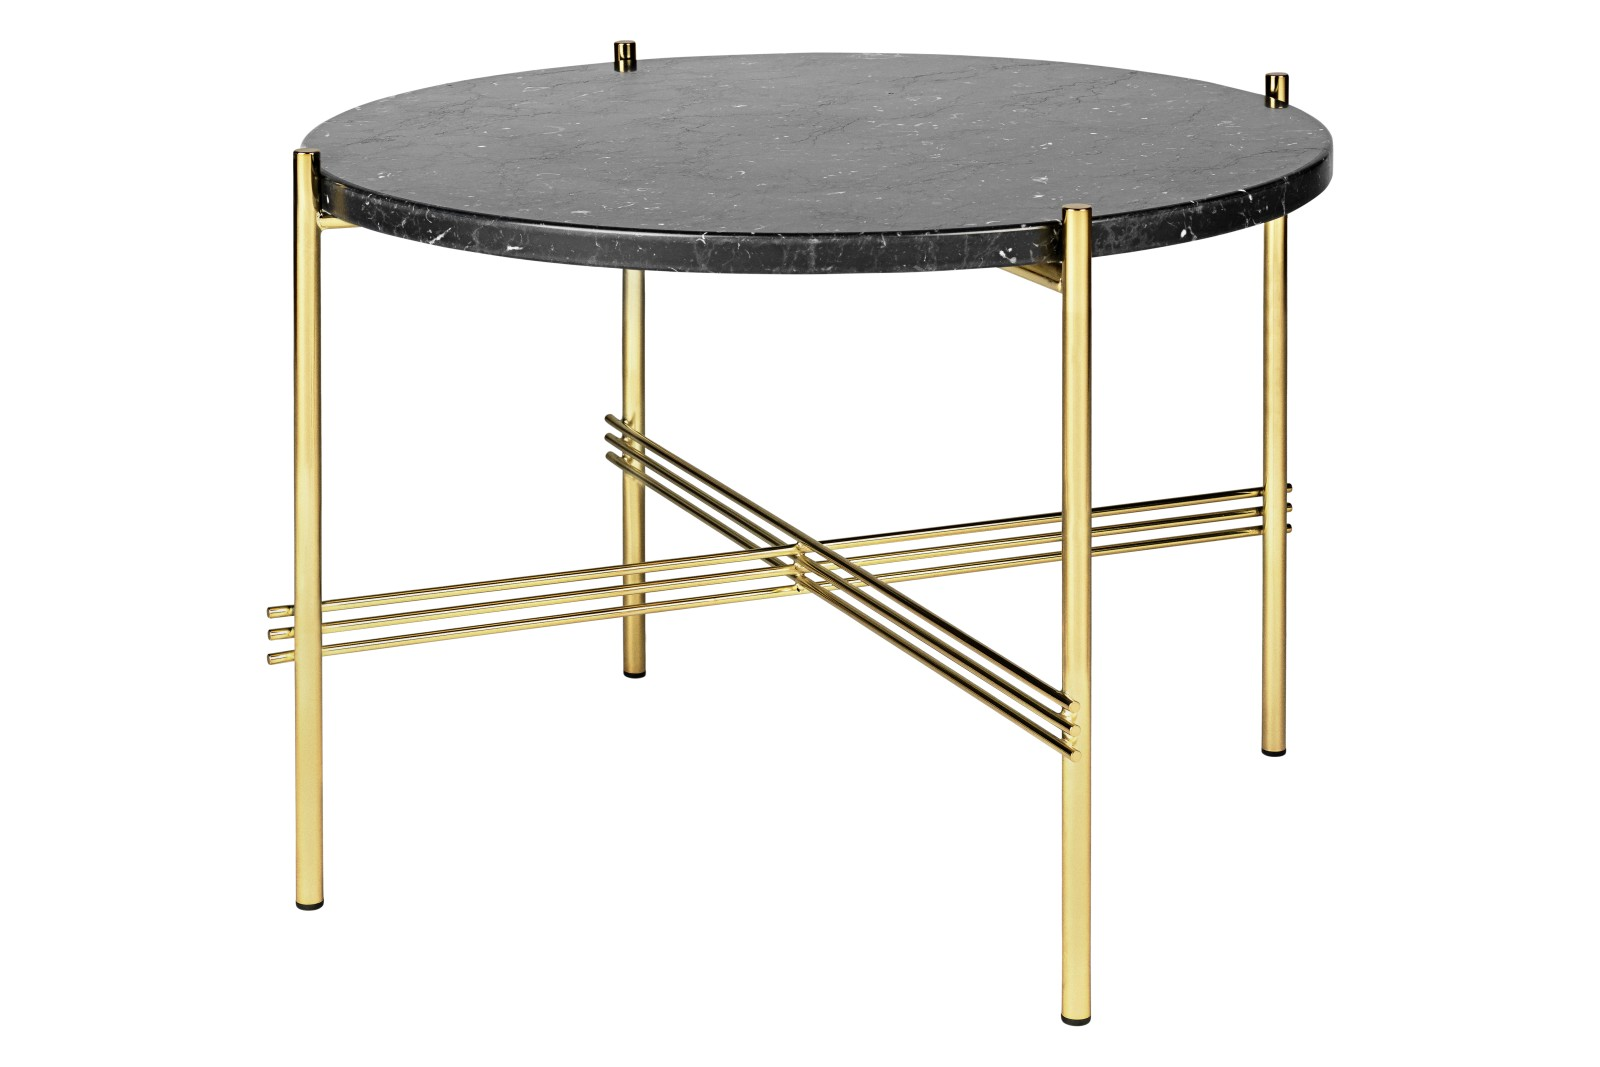 TS Round Coffee Table with Marble Top in Black Frame Gubi Marble Nero Marquina, Gubi Metal Brass, 05